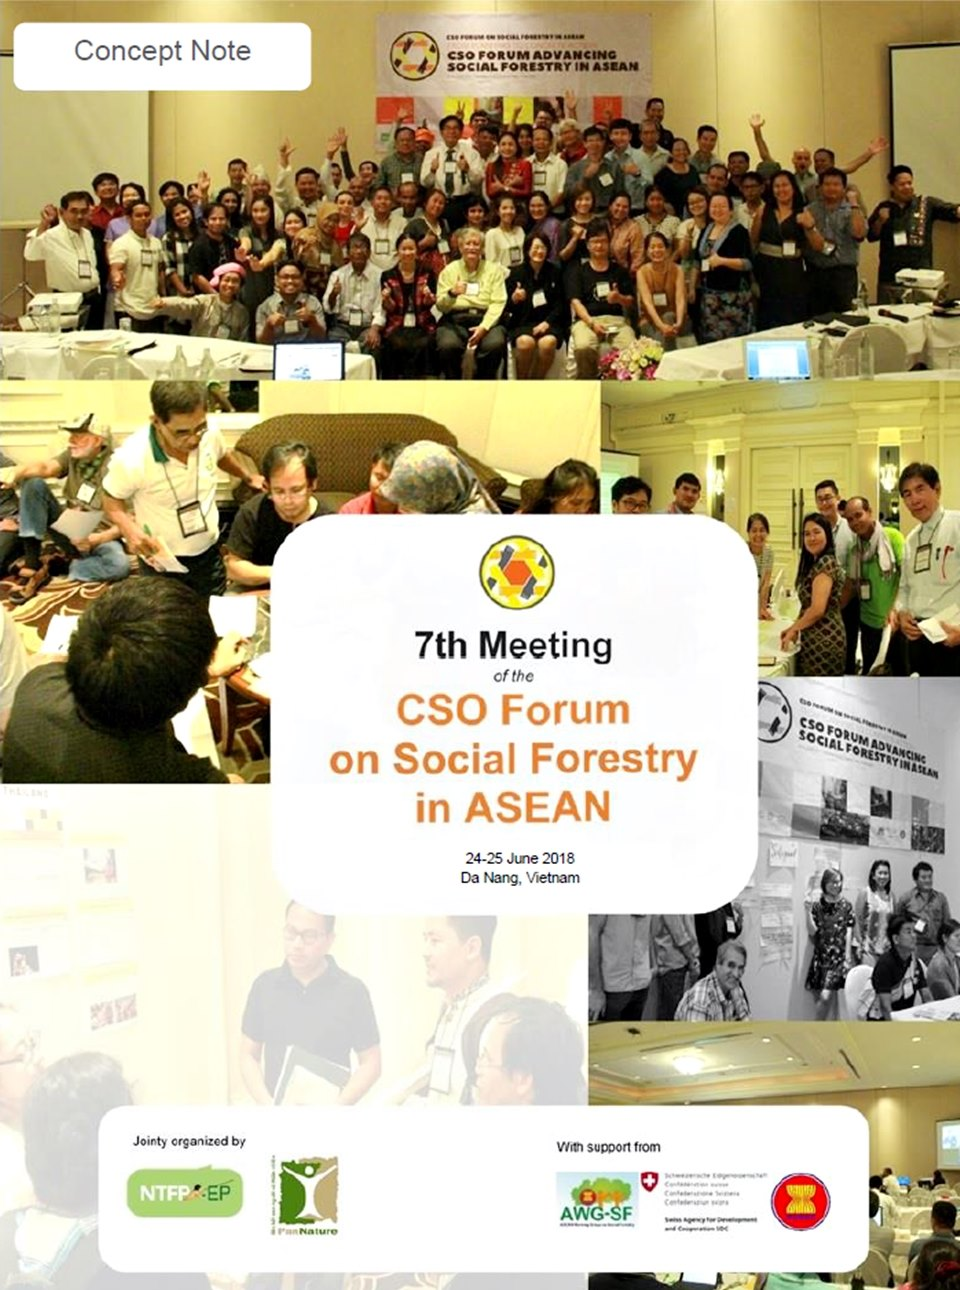 searca-holds-asrf-event-back-to-back-asean-regional-meetings-and-agroforestry-conference-da-nang-vietnam-02